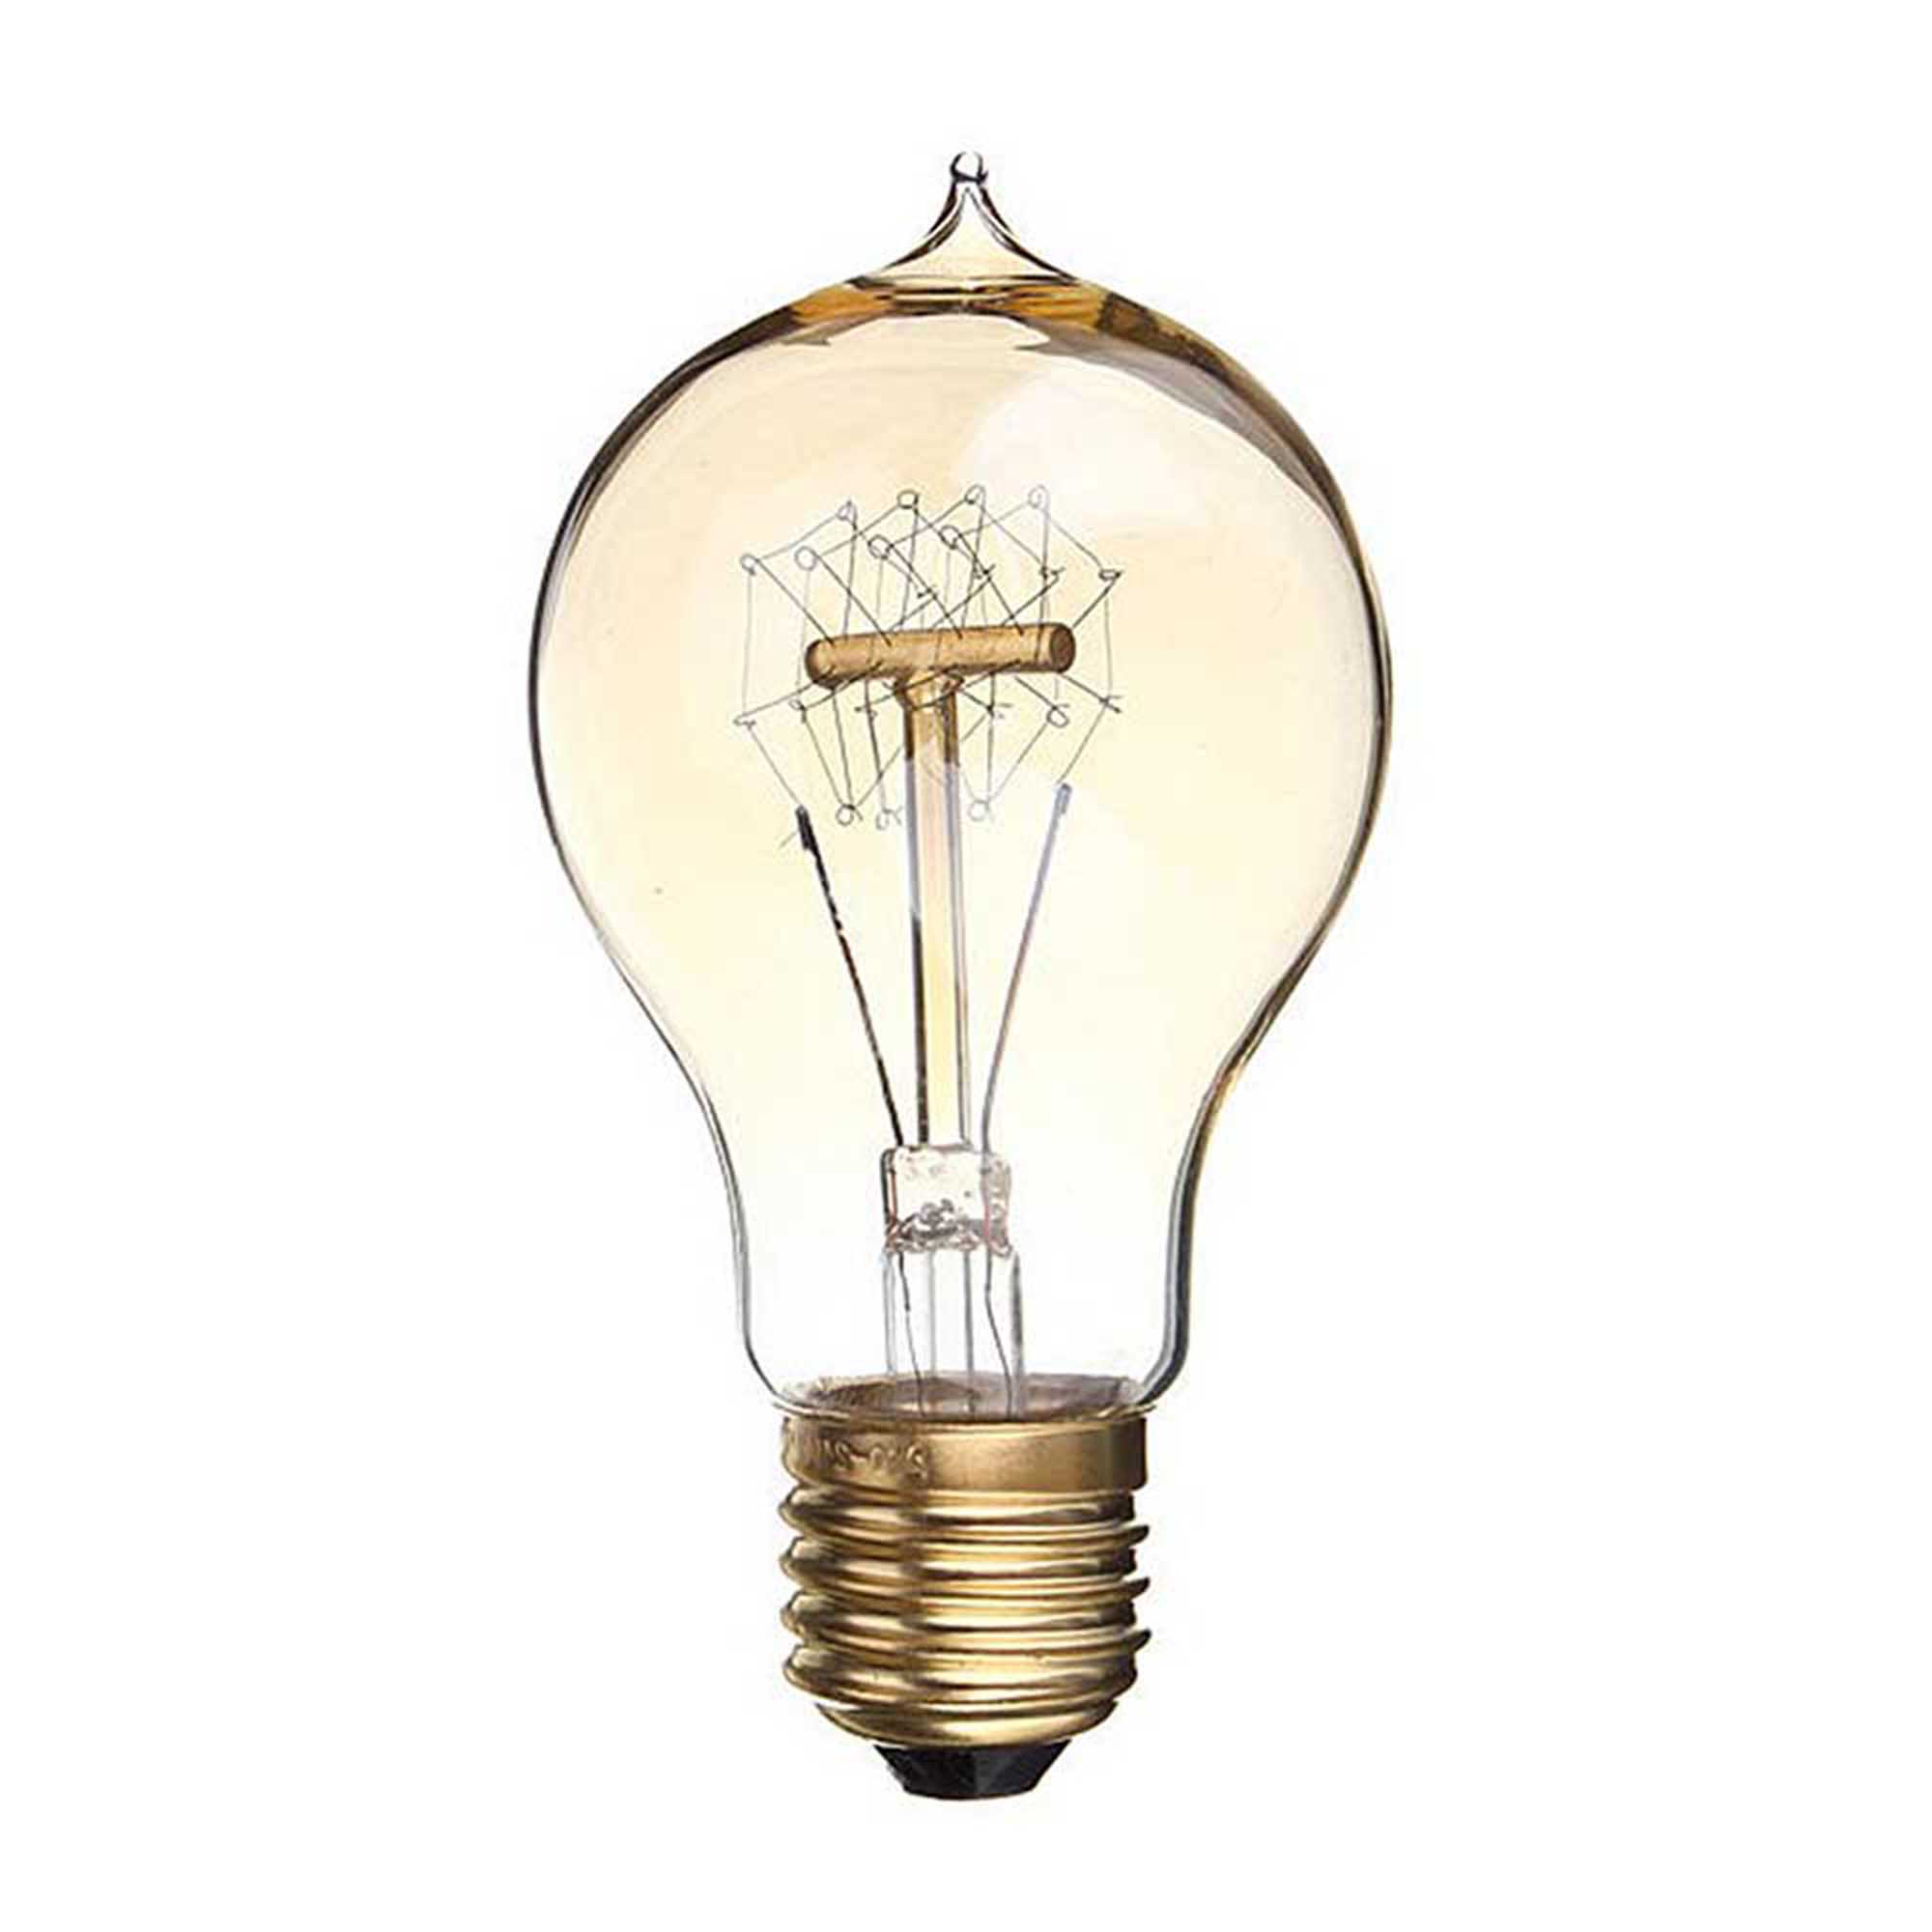 Filament A19 Vintage Edison Light Bulb, Quad-Loop Antique Hanging Light, E27 Base